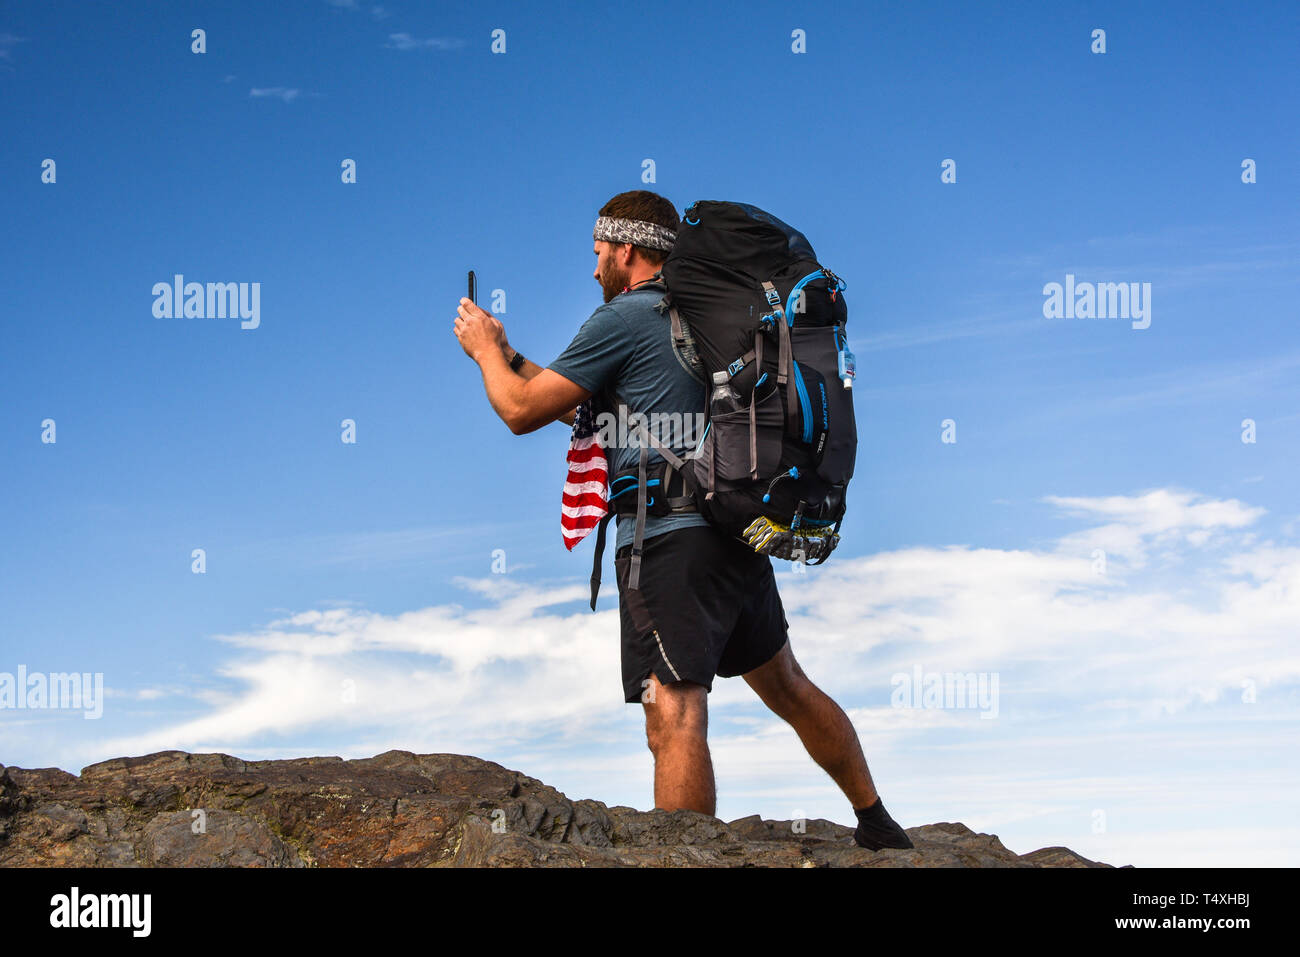 Male backpacker hiking on Appalachian Trail, taking photo with smart cell phone, Great Smoky Mountains National Park, outside Gatlinburg, TN, USA Stock Photo